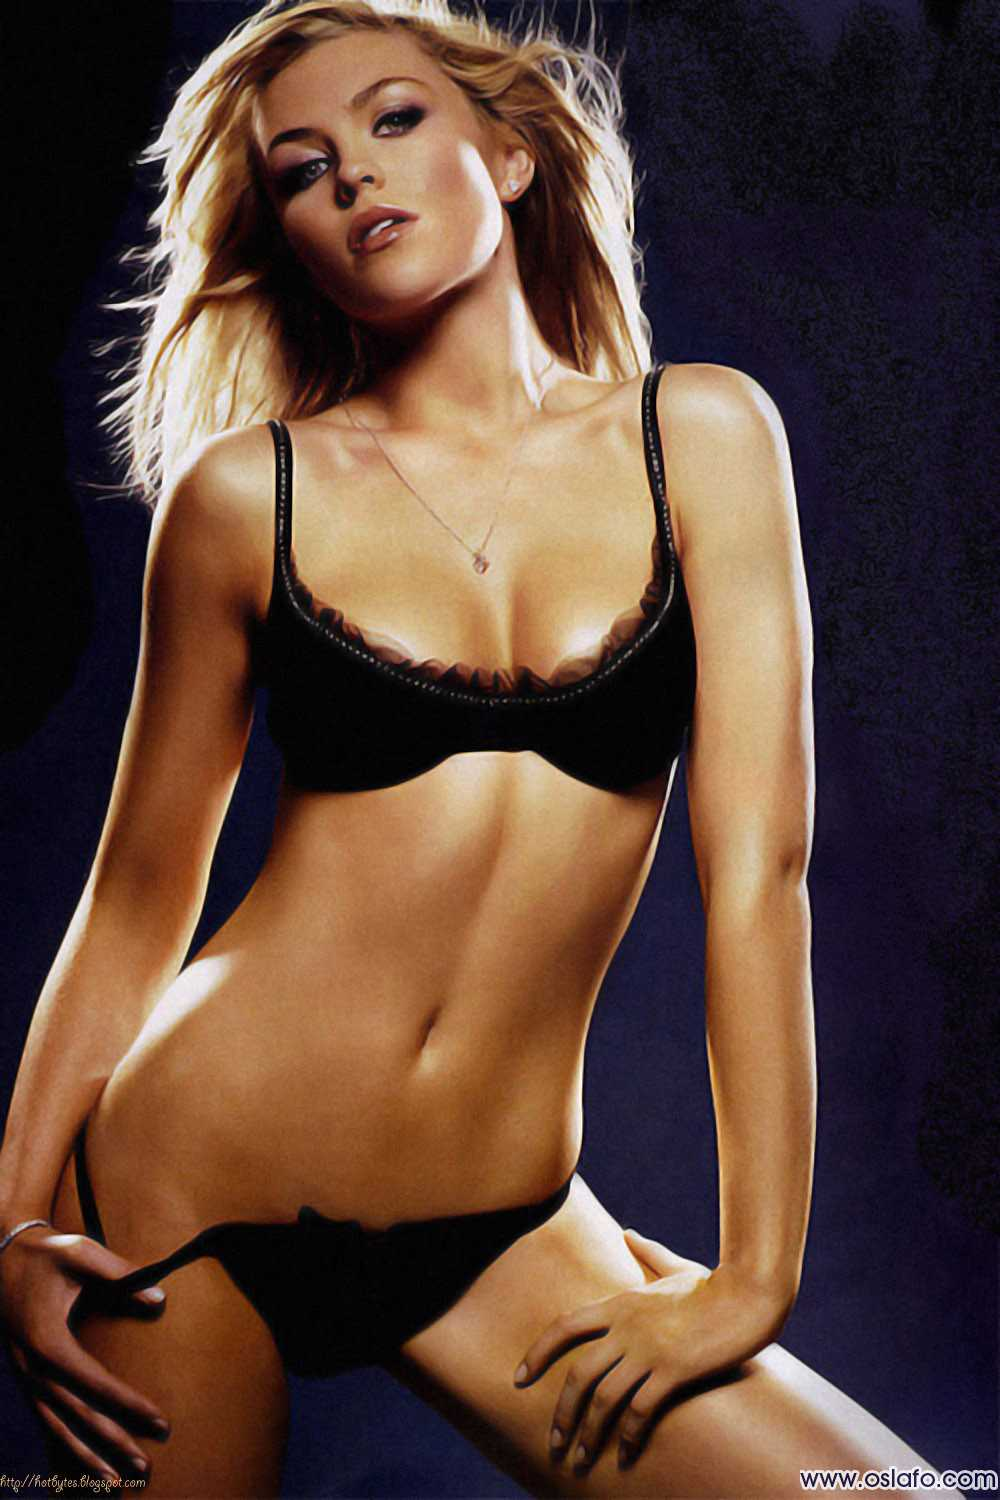 49 Hot Pictures Of Abbey Clancy Will Make You Drool For ...